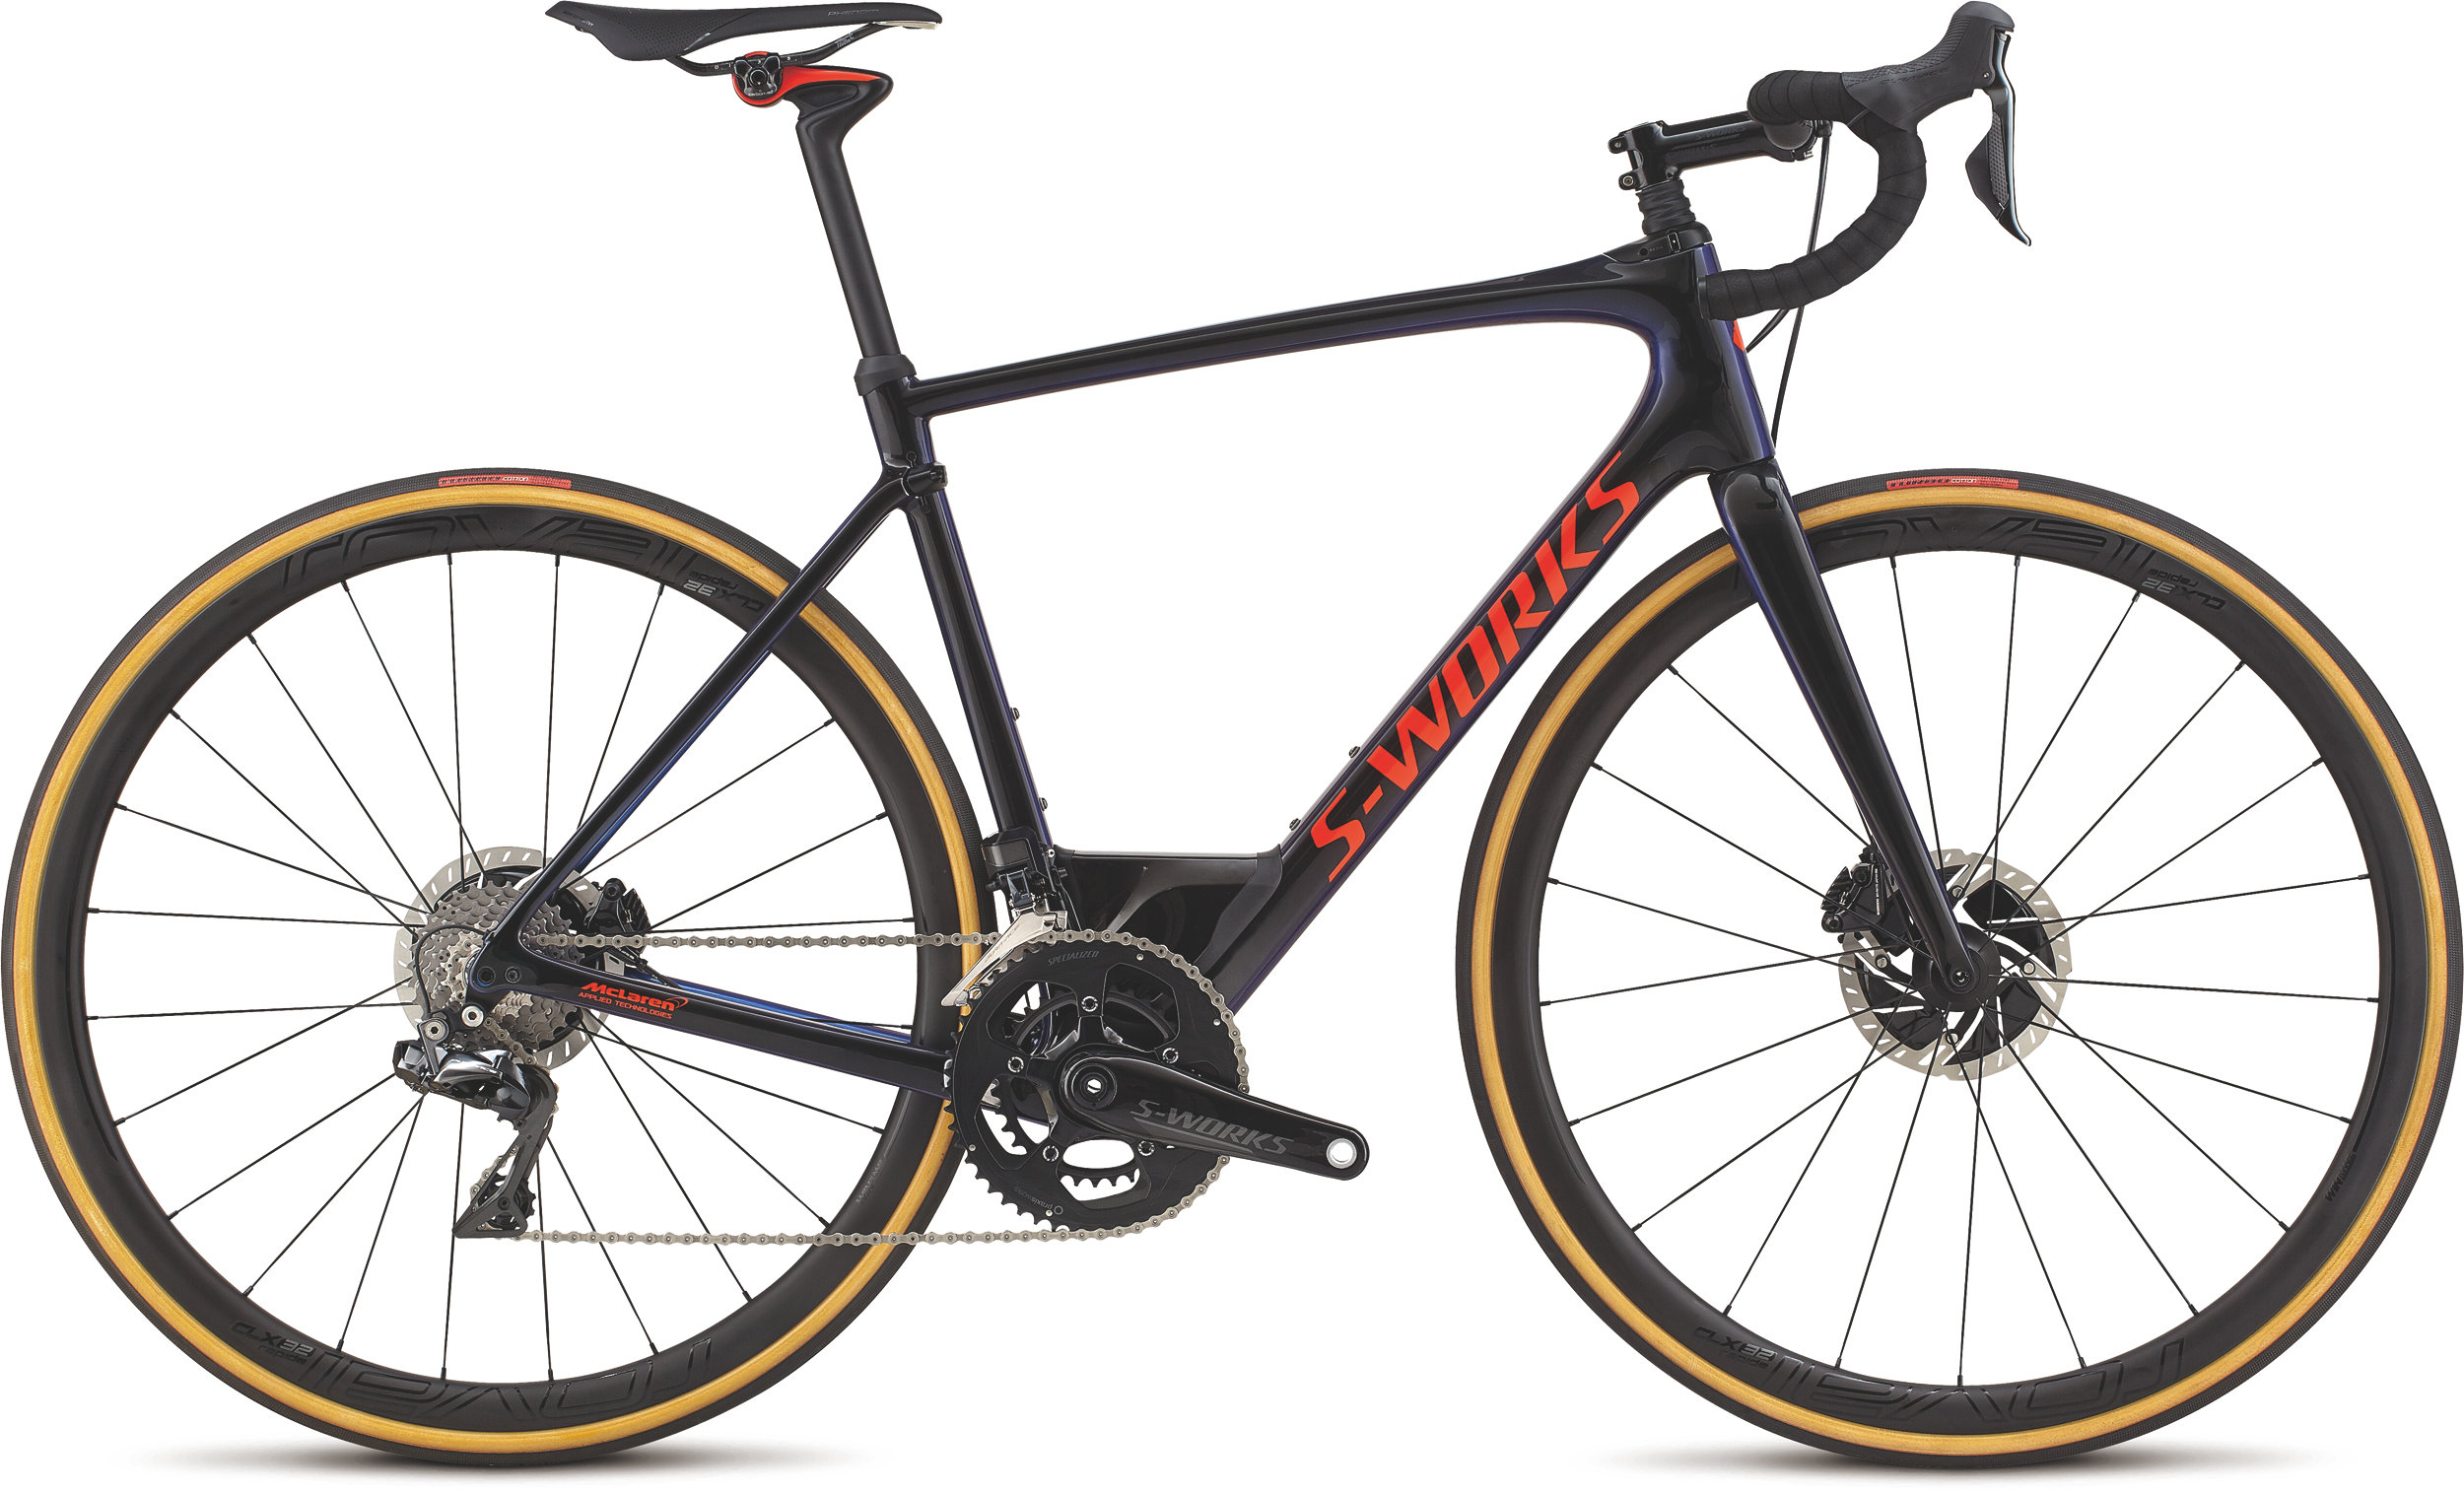 Specialized S-Works Roubaix Dura-Ace Di2 GLOSS TARMAC BLK/CHAMELEON EDGE FADE/RKT RED/CLEAN 56 - Alpha Bikes